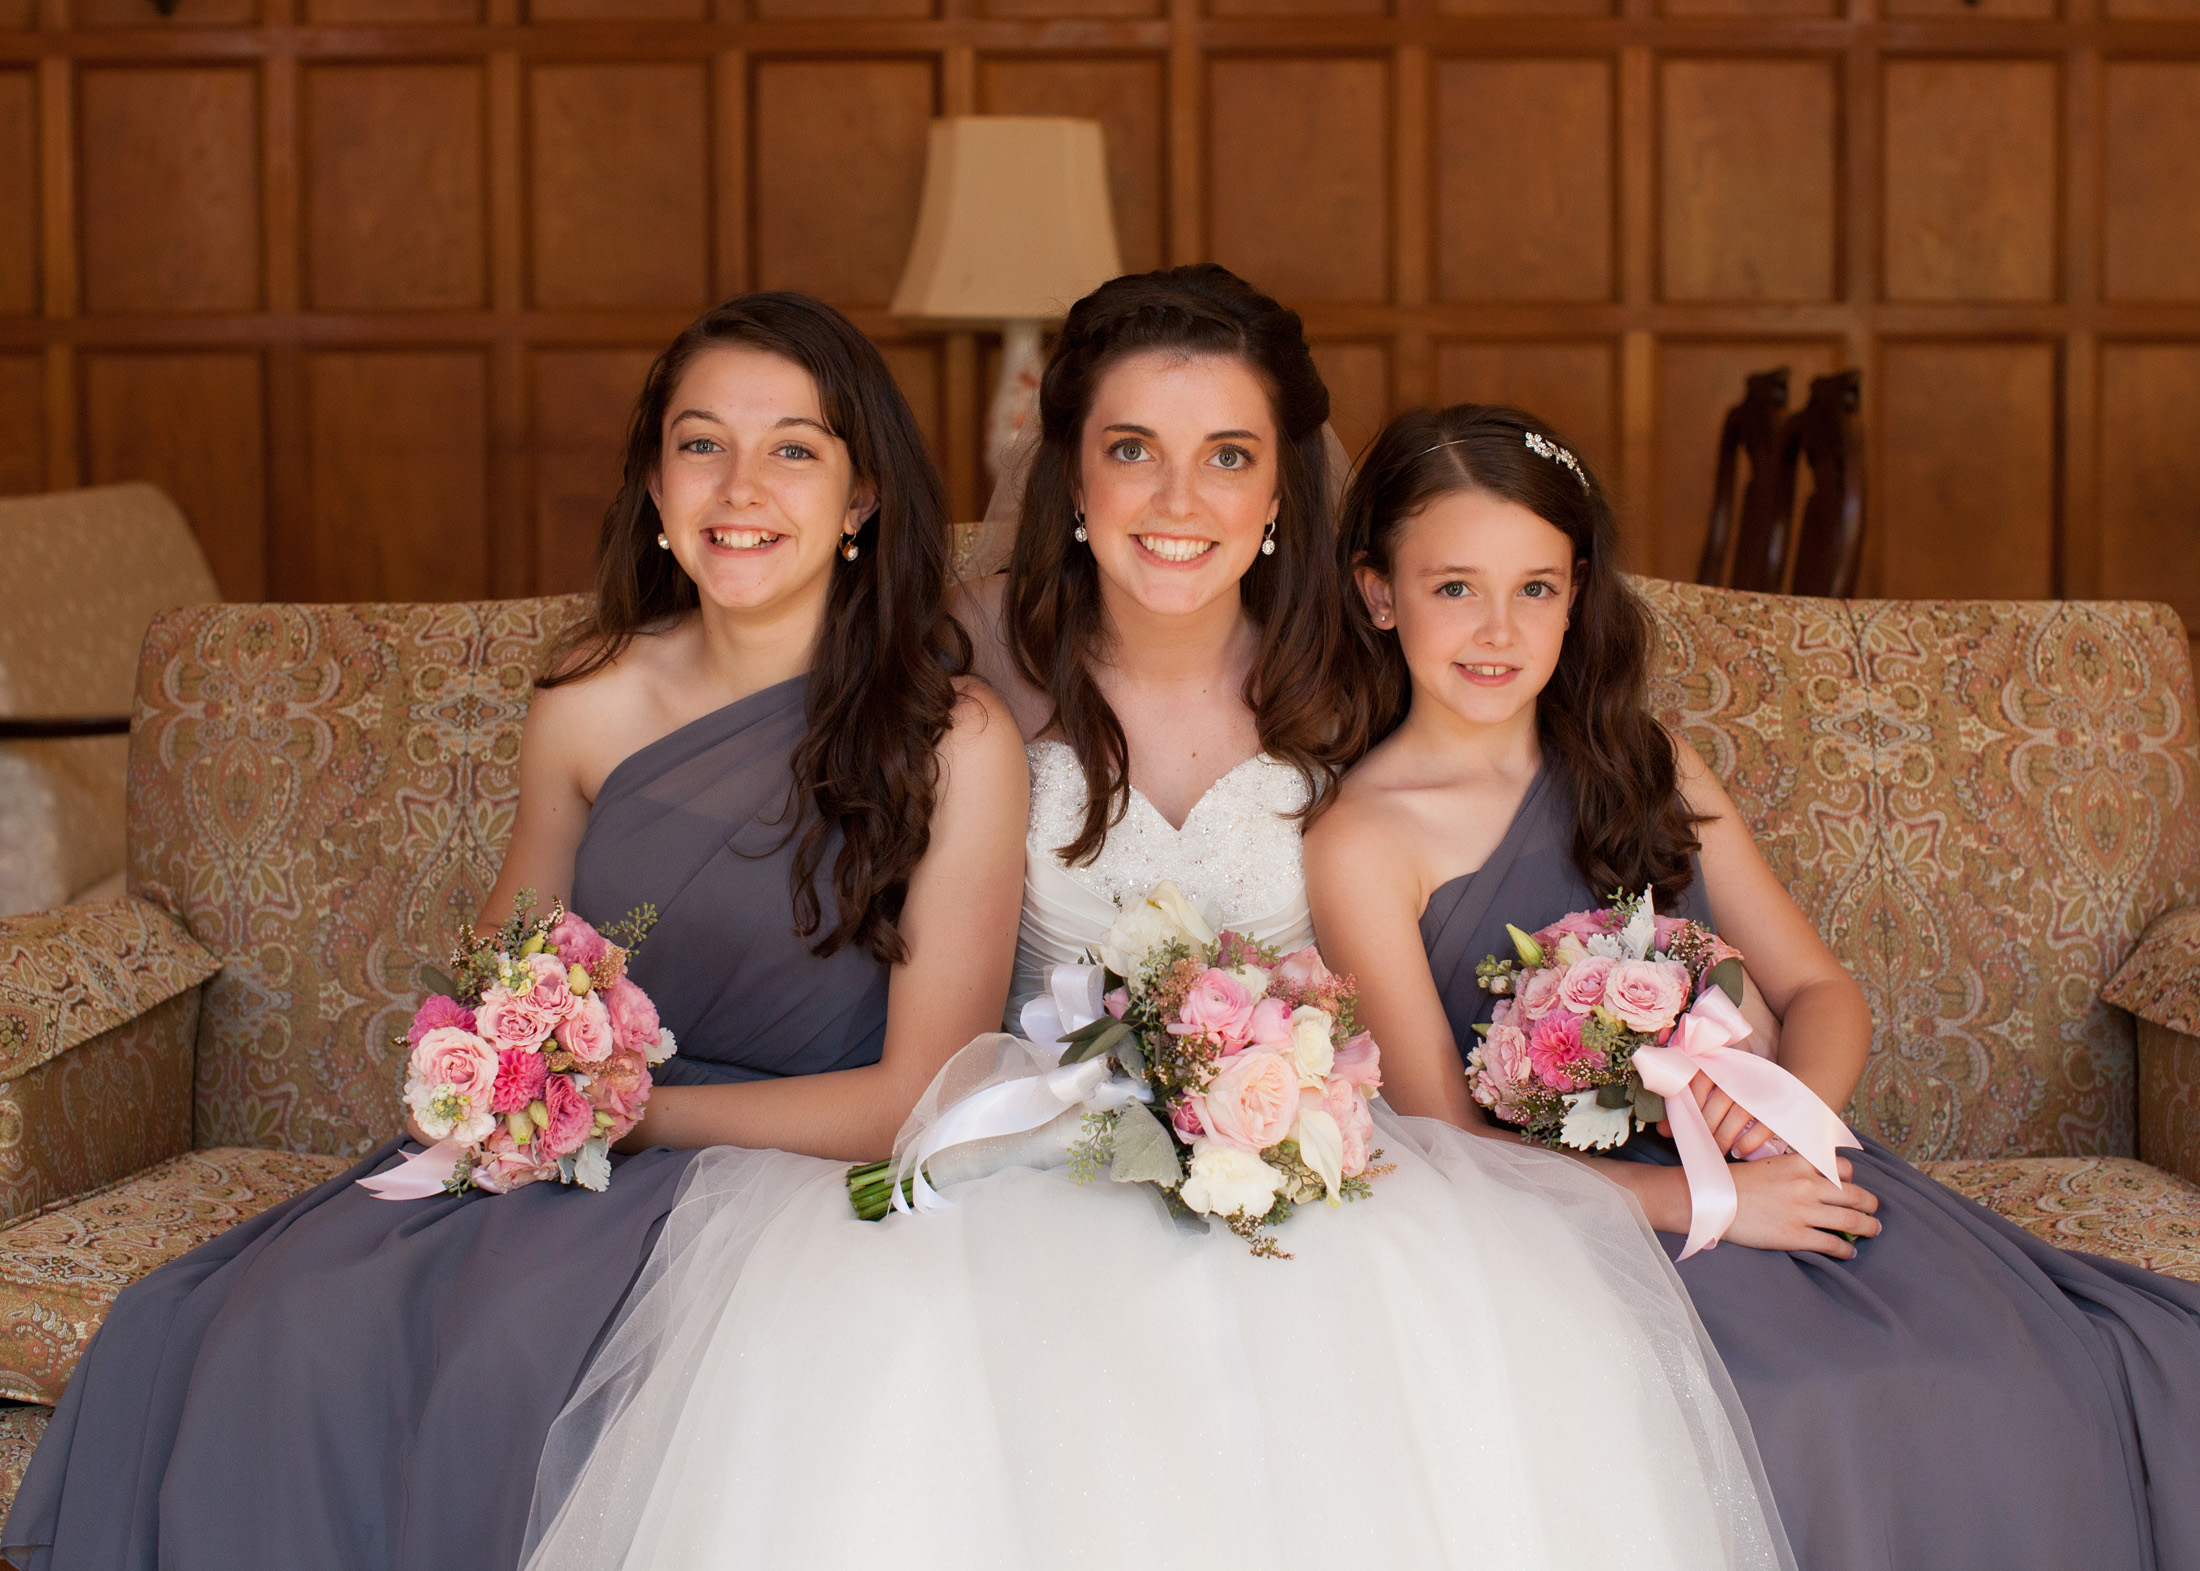 UofM_weddings_hull_melanie_reyes_044